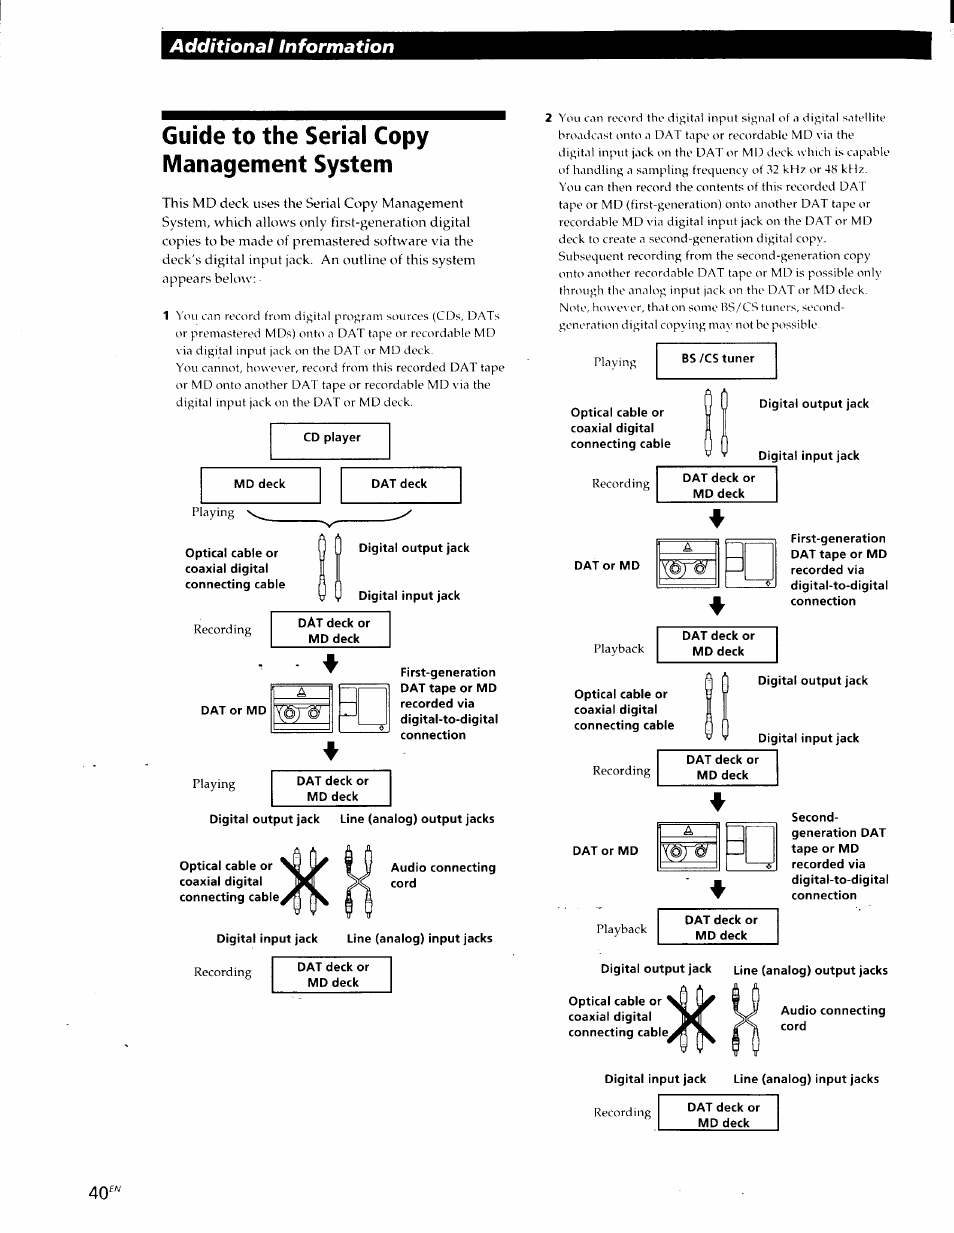 Sony Ja30es Manual Diagram Of 2003 J140px4sts Johnson Outboard Water Pump And Array Guide To The Serial Copy Management System Additional Information Rh Modes D Emploi Com